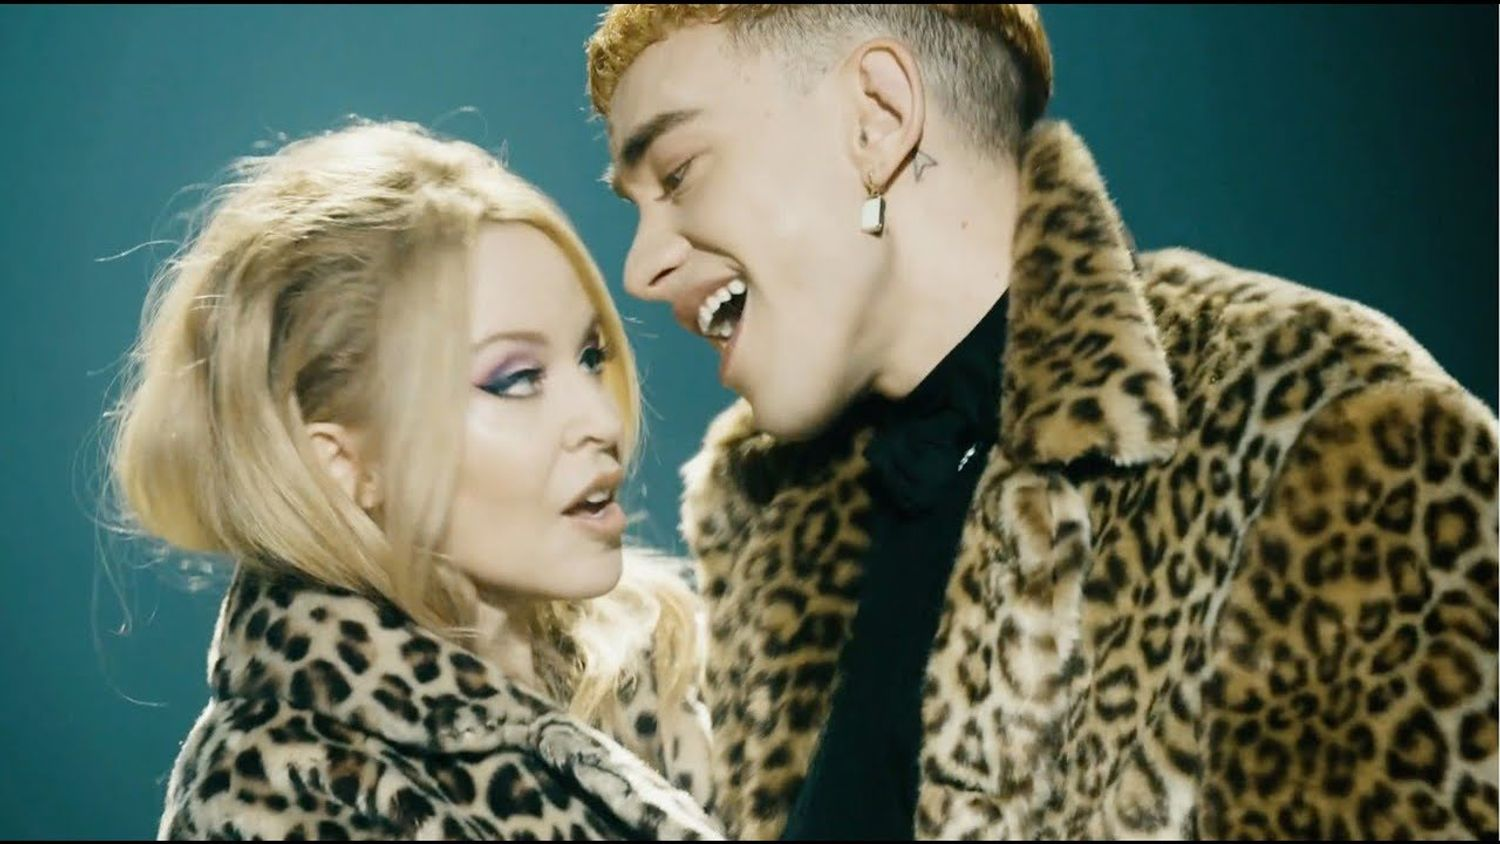 'A Second To Midnight' de Kylie Minogue et Years & Years